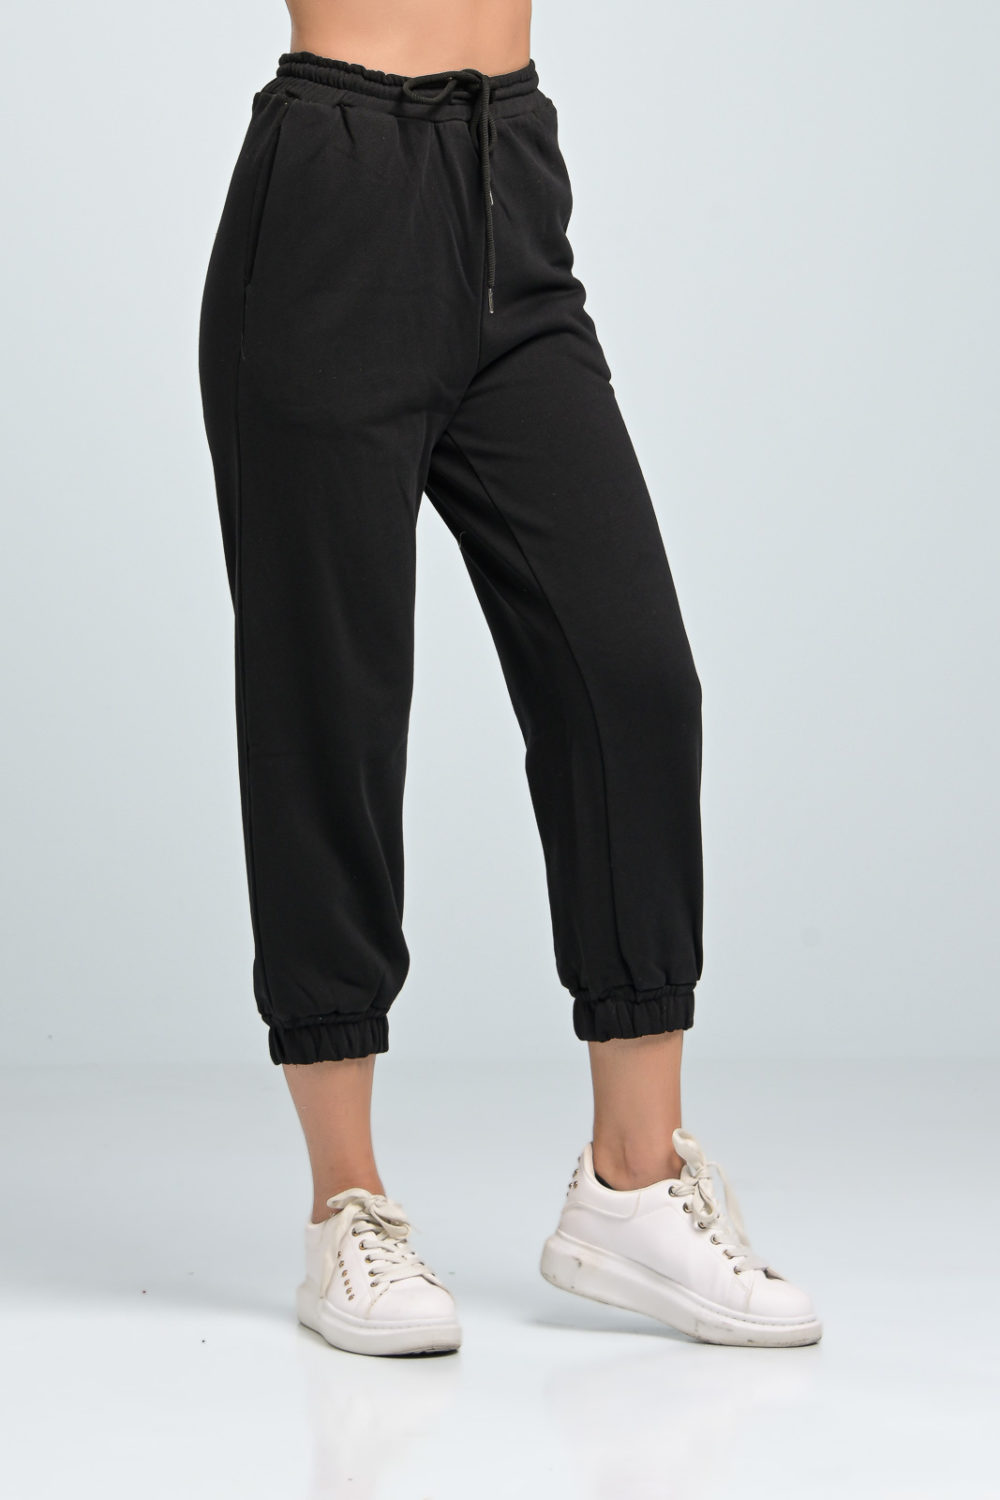 Classic Black Cotton Pants